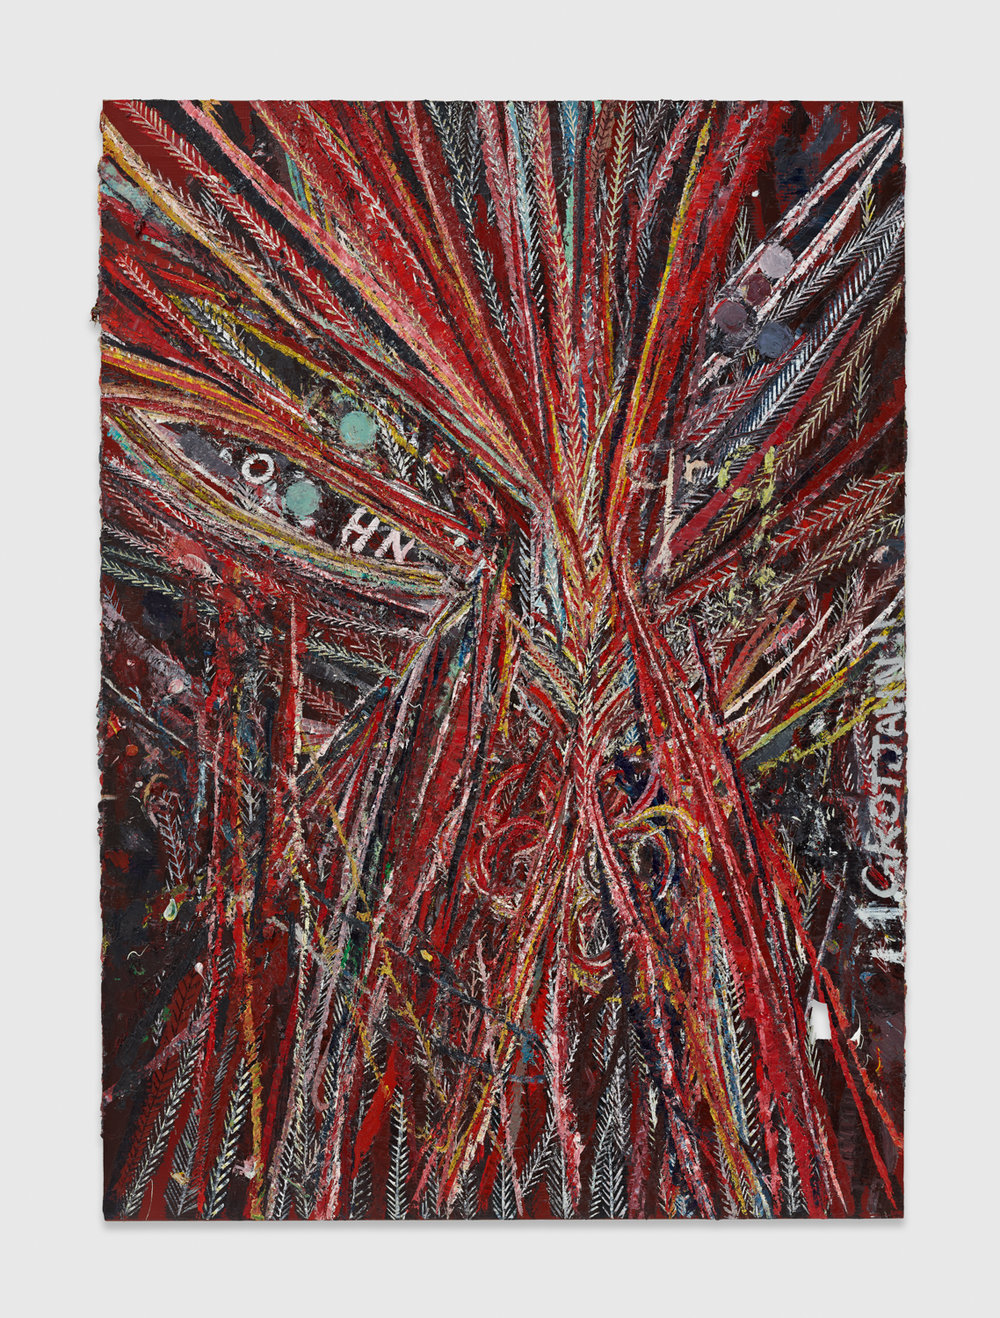 Mark Grotjahn  Untitled (S II Some of us didn't know we were Indian, Painting for RH, Face 41.72)  2011 Oil on cardboard mounted on linen 101 ¼h x 72 ¼w in MG41.72